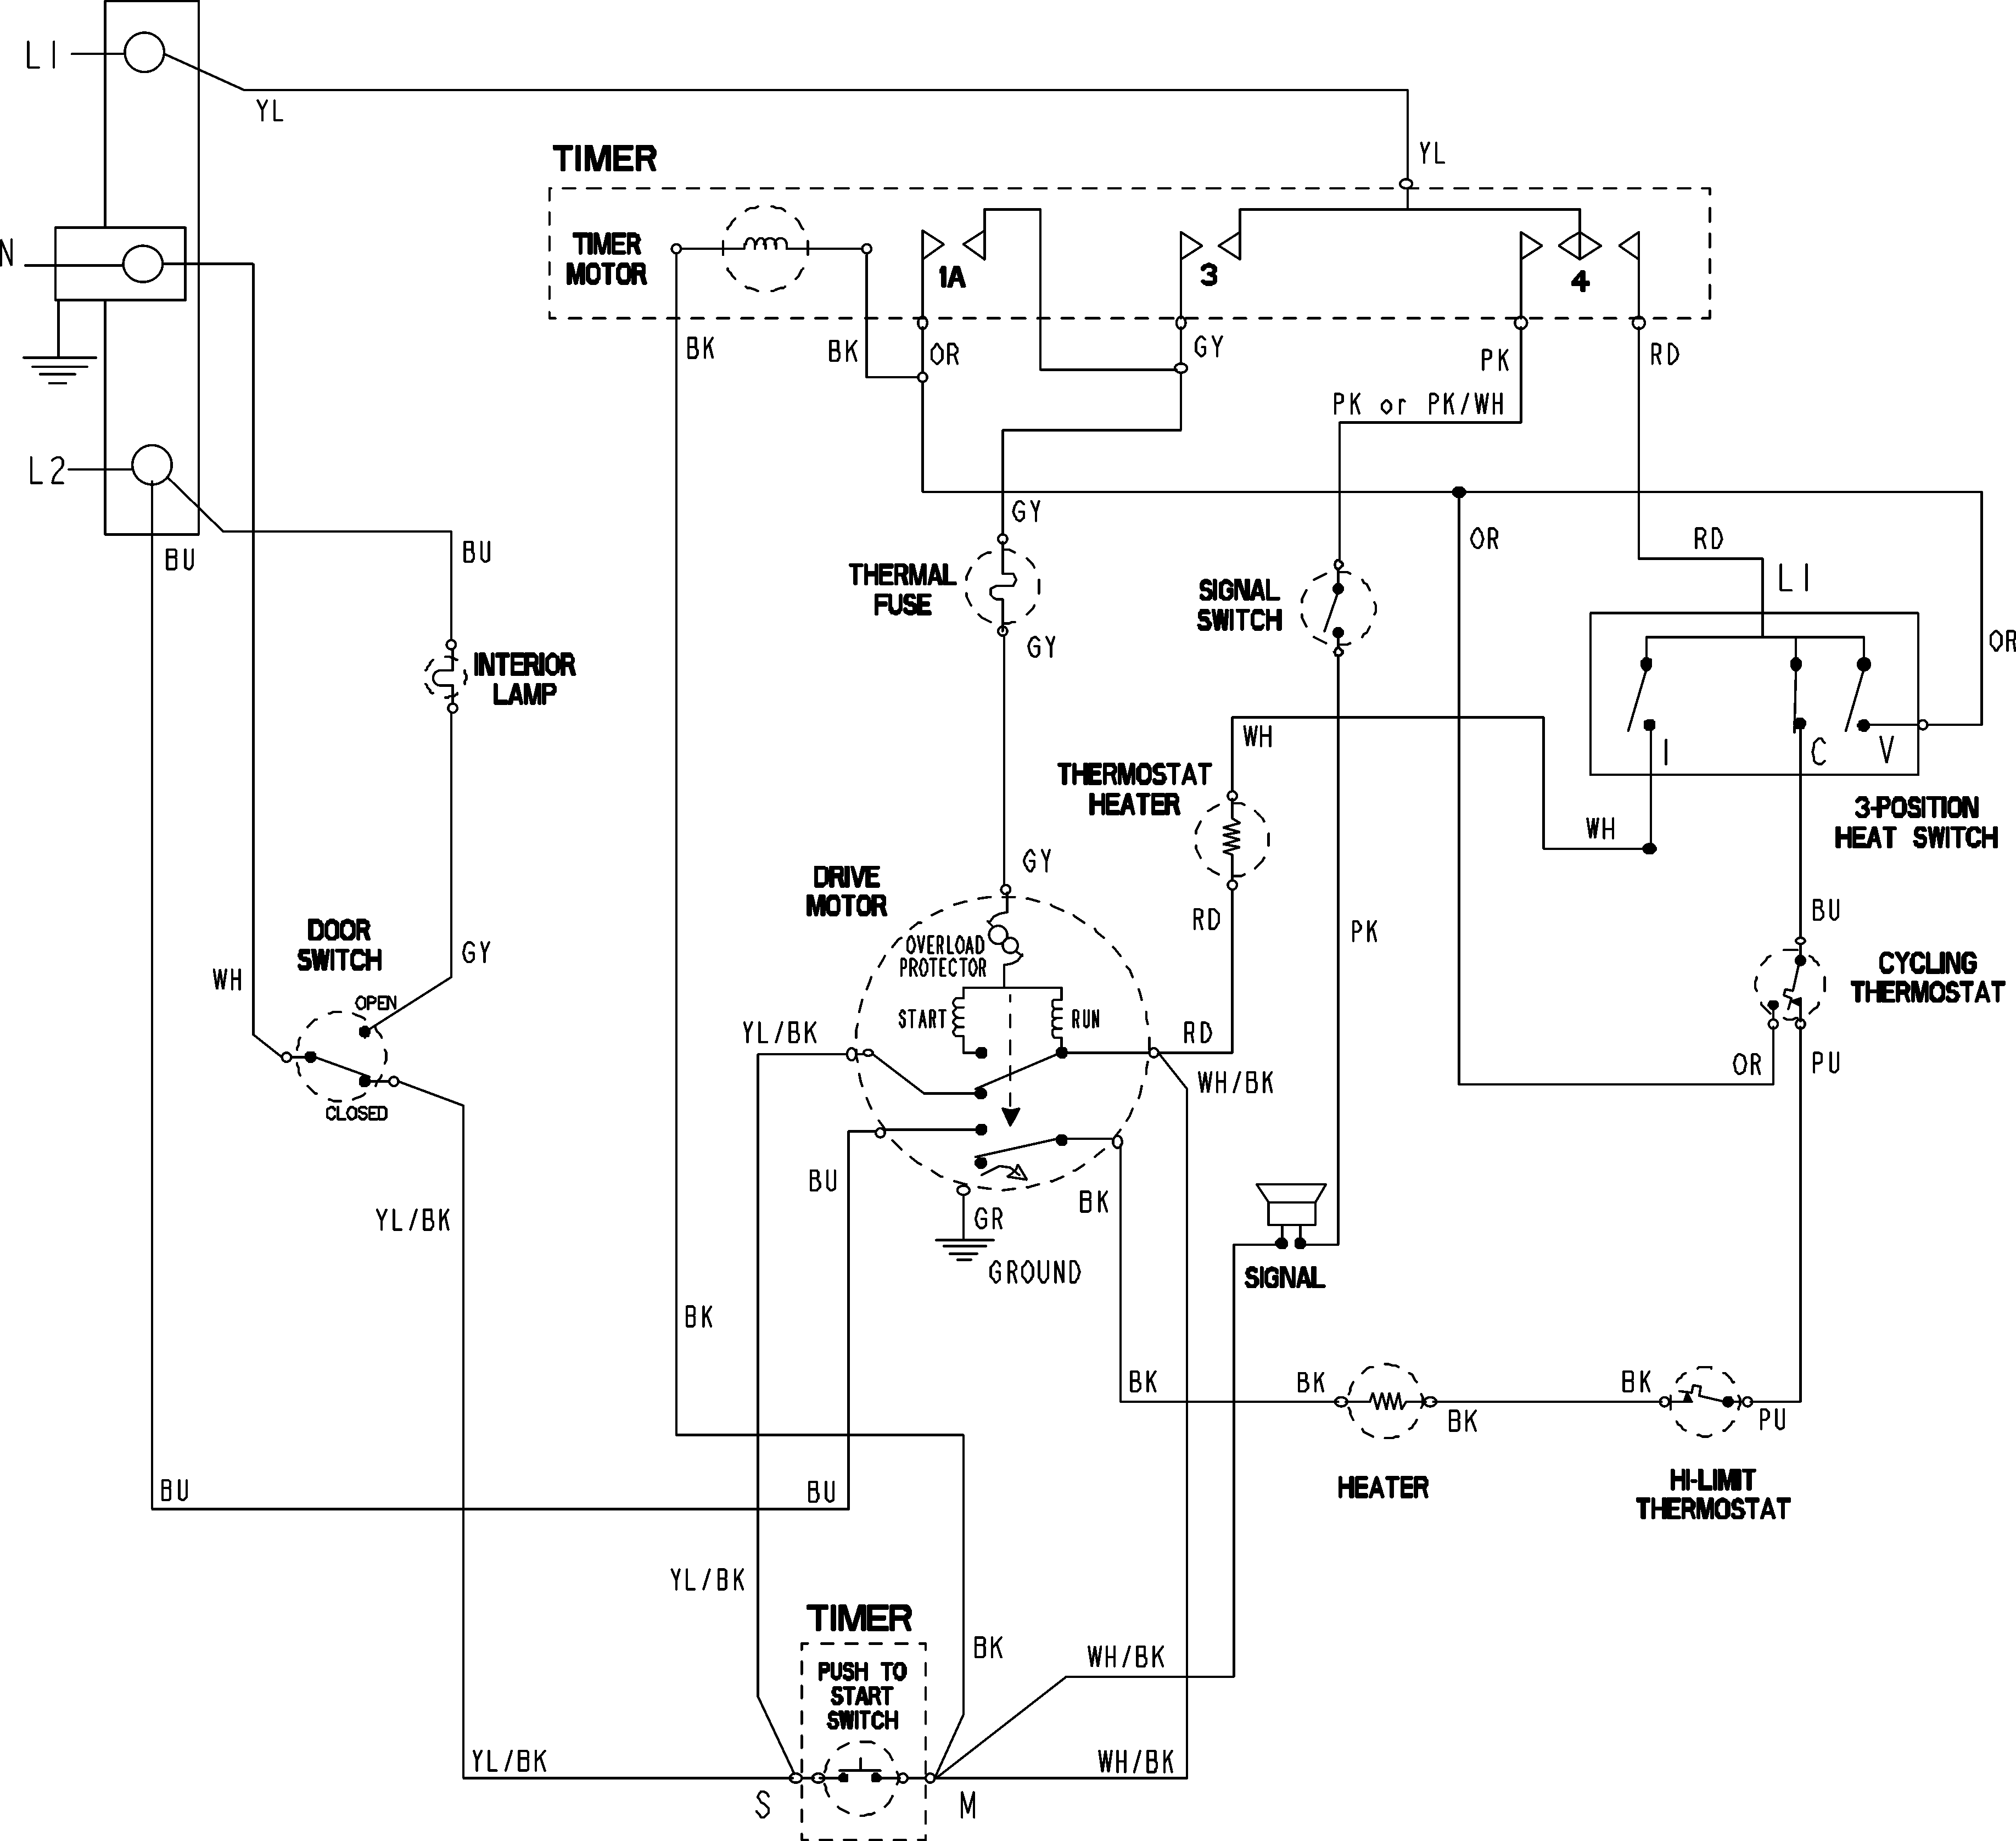 medium resolution of pigtail wire diagram for dryer